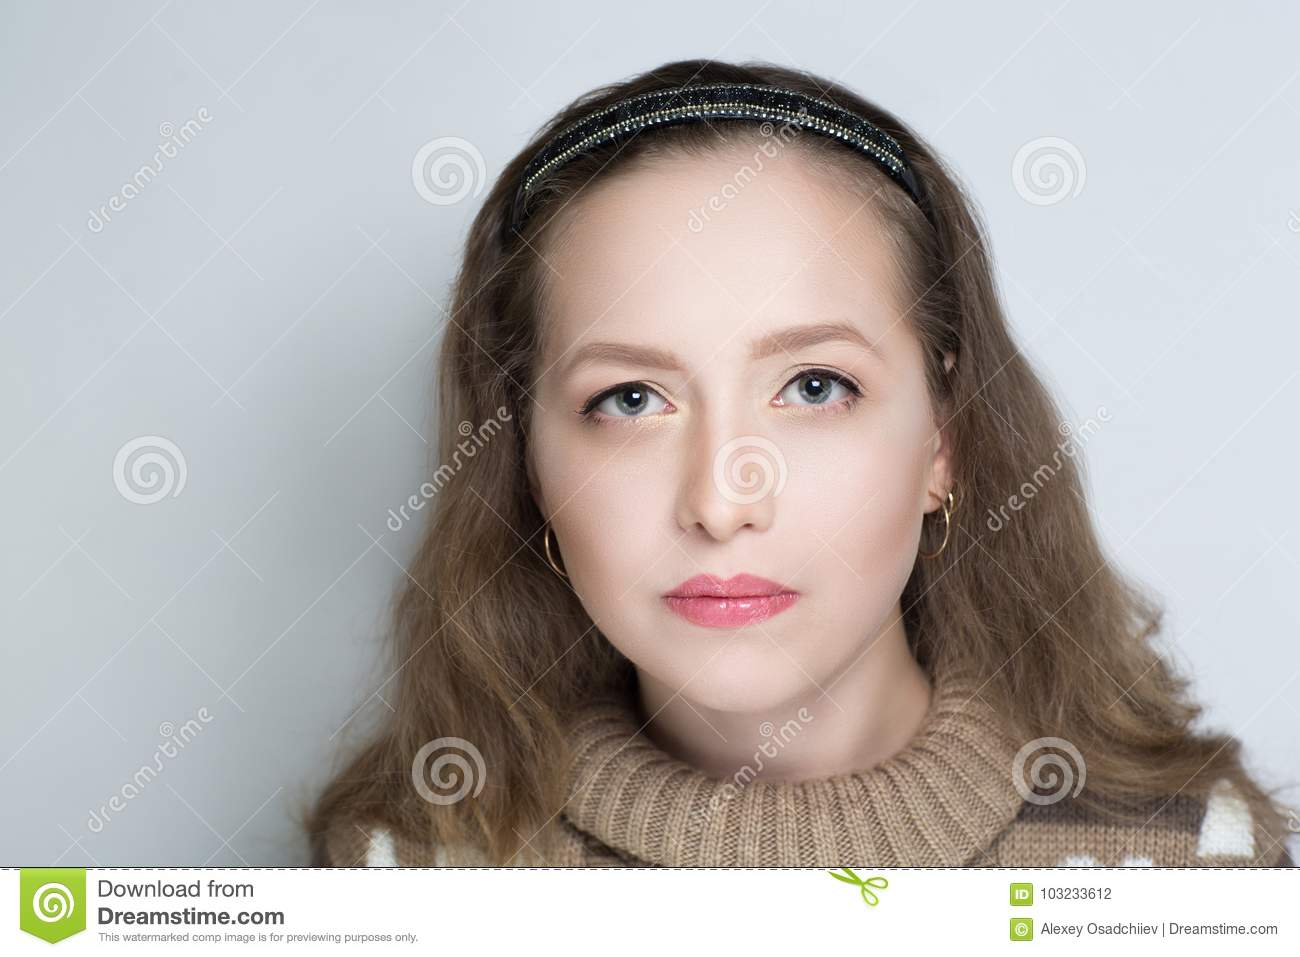 Ugly face woman stock photo. Image of open, lonely, lips